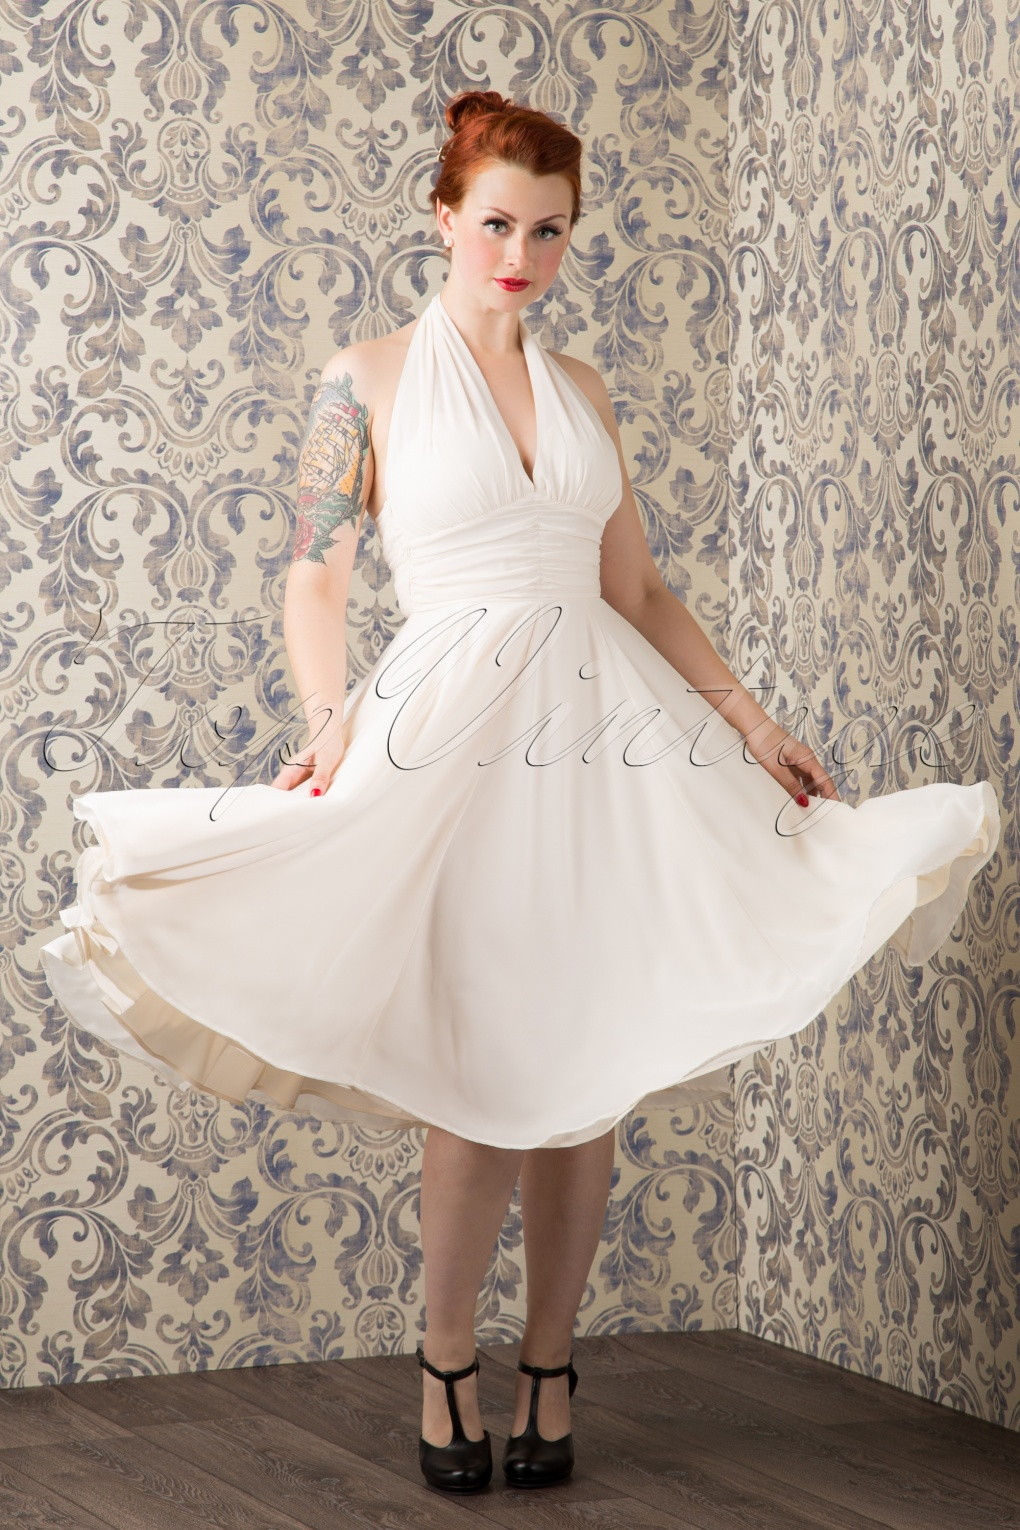 1950s Prom Dresses & Party Dresses 50s Monroe Dress in Ivory White £50.24 AT vintagedancer.com